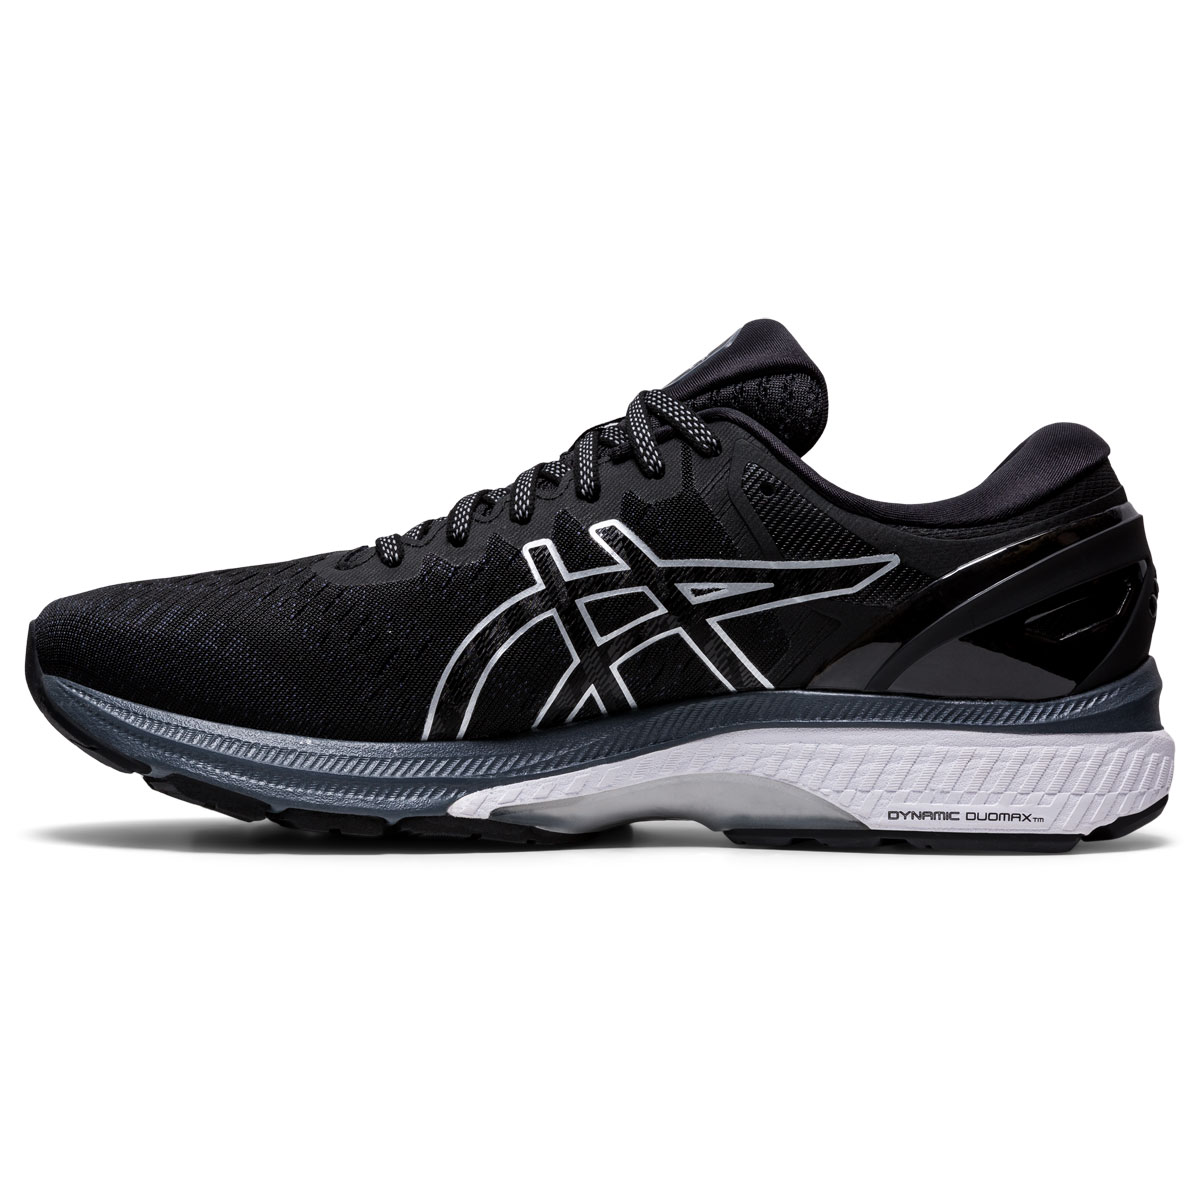 Men's Asics GEL-Kayano 27 Running Shoe - Color: Black/Pure Silv (Regular Width) - Size: 6, Black/Pure Silver, large, image 2